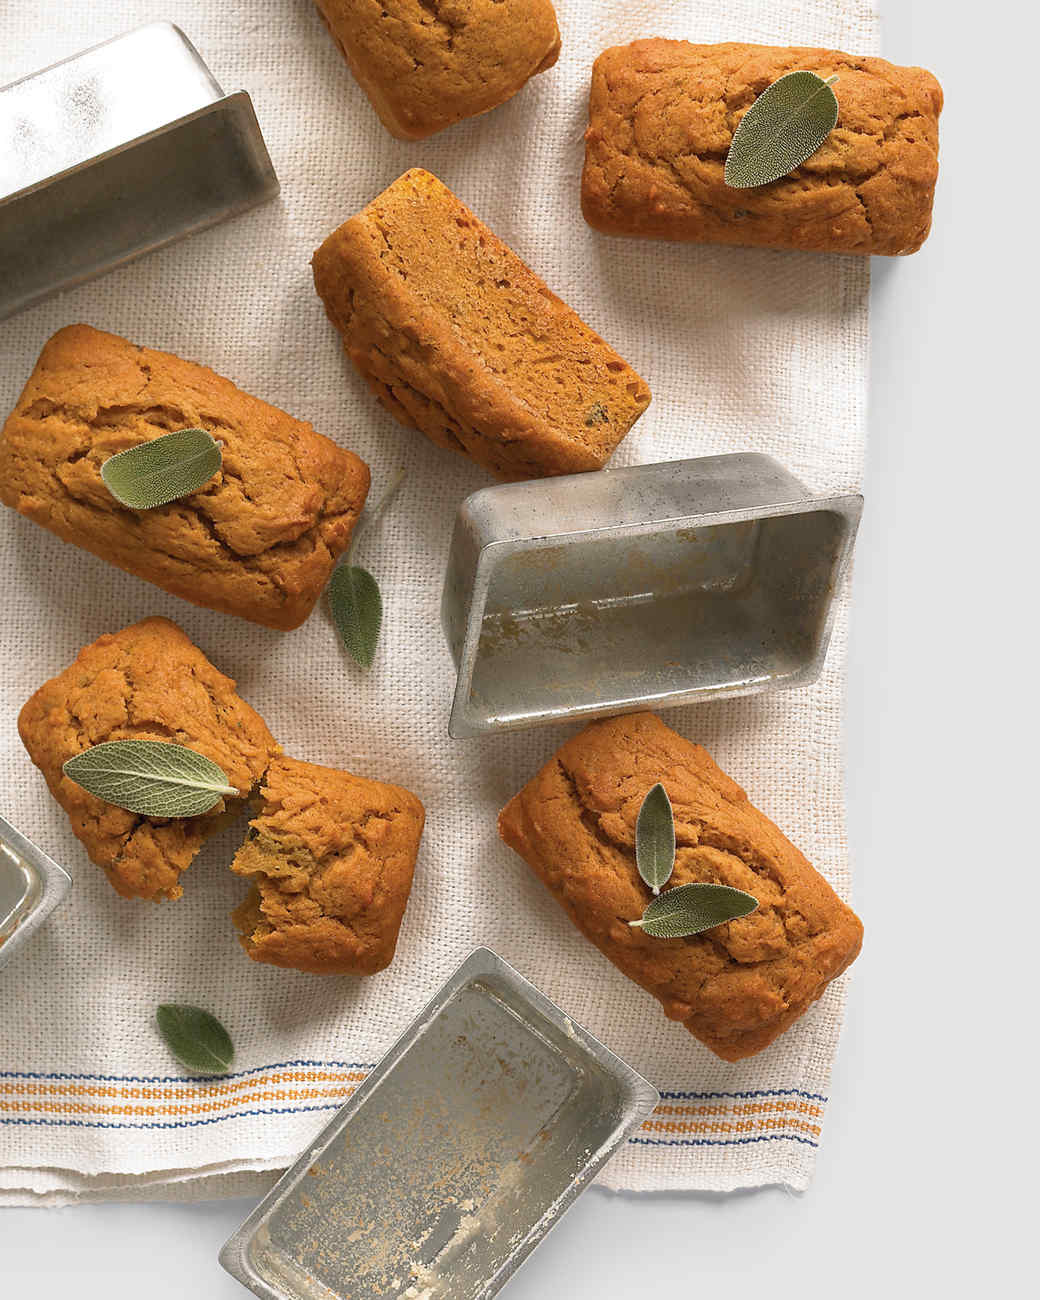 pumpkin-sage-browned-butter-cakes-mscakes-009-r3.jpg